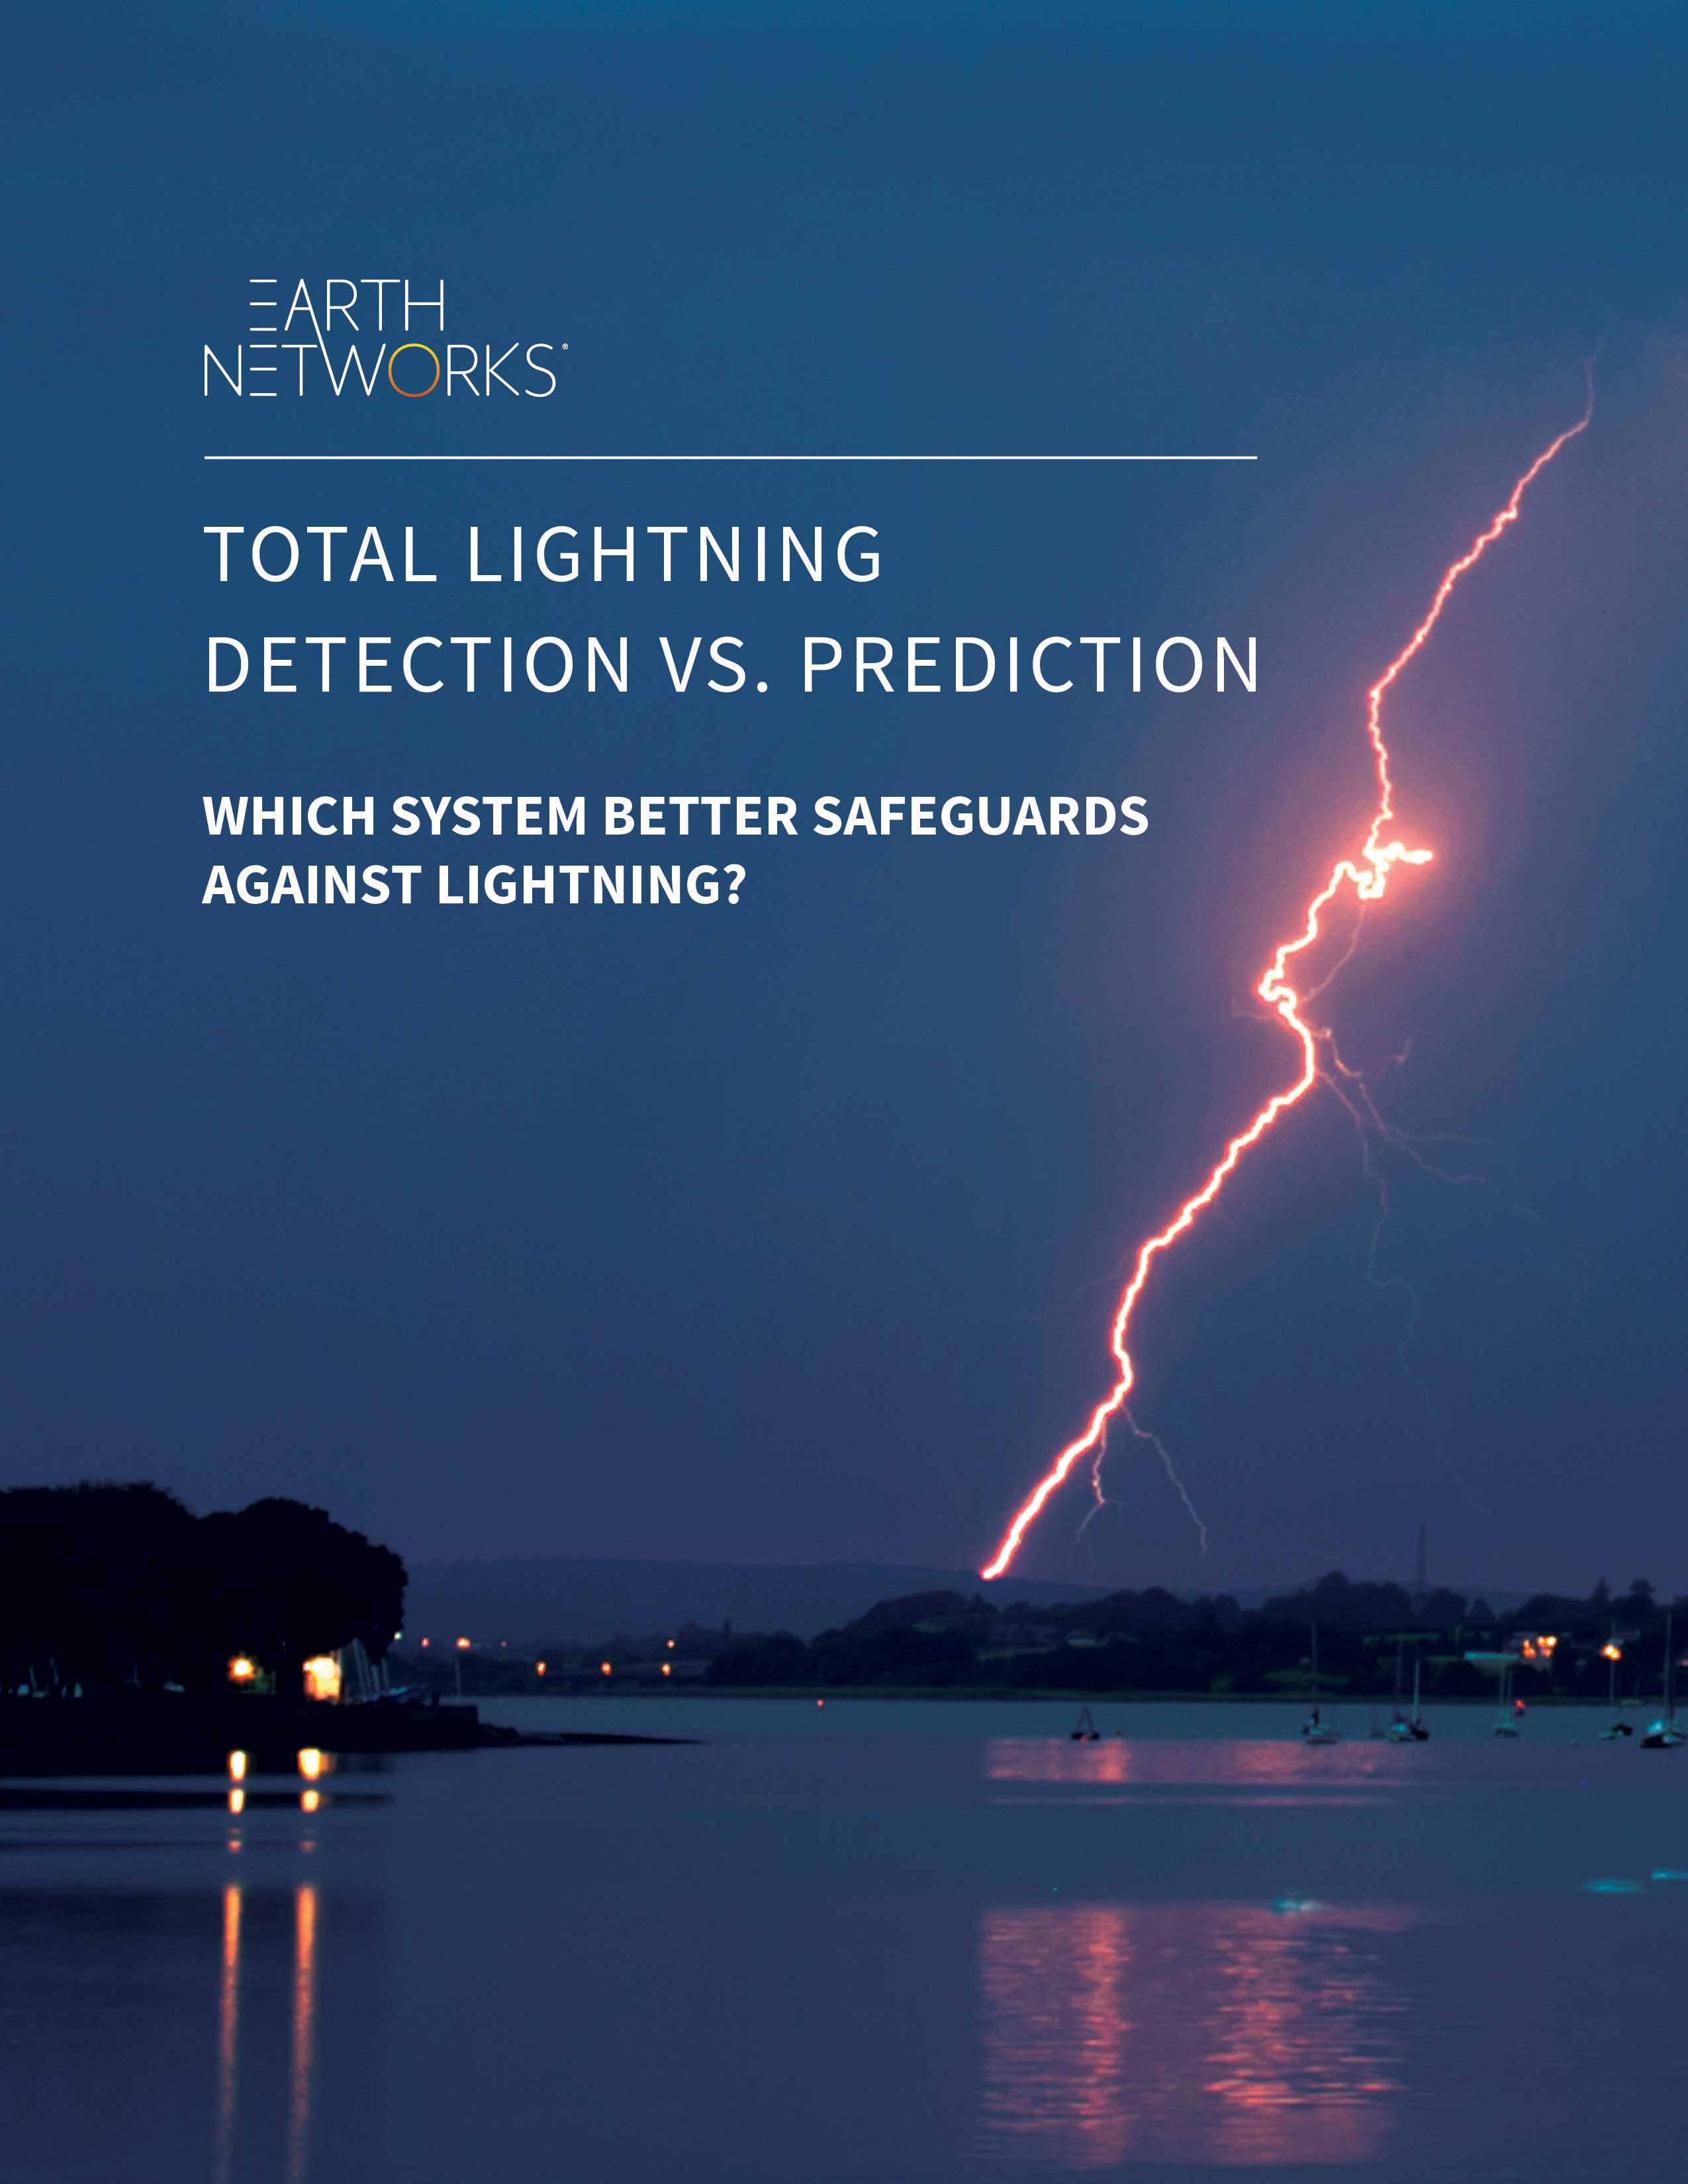 Read the lightning detection vs prediction case study